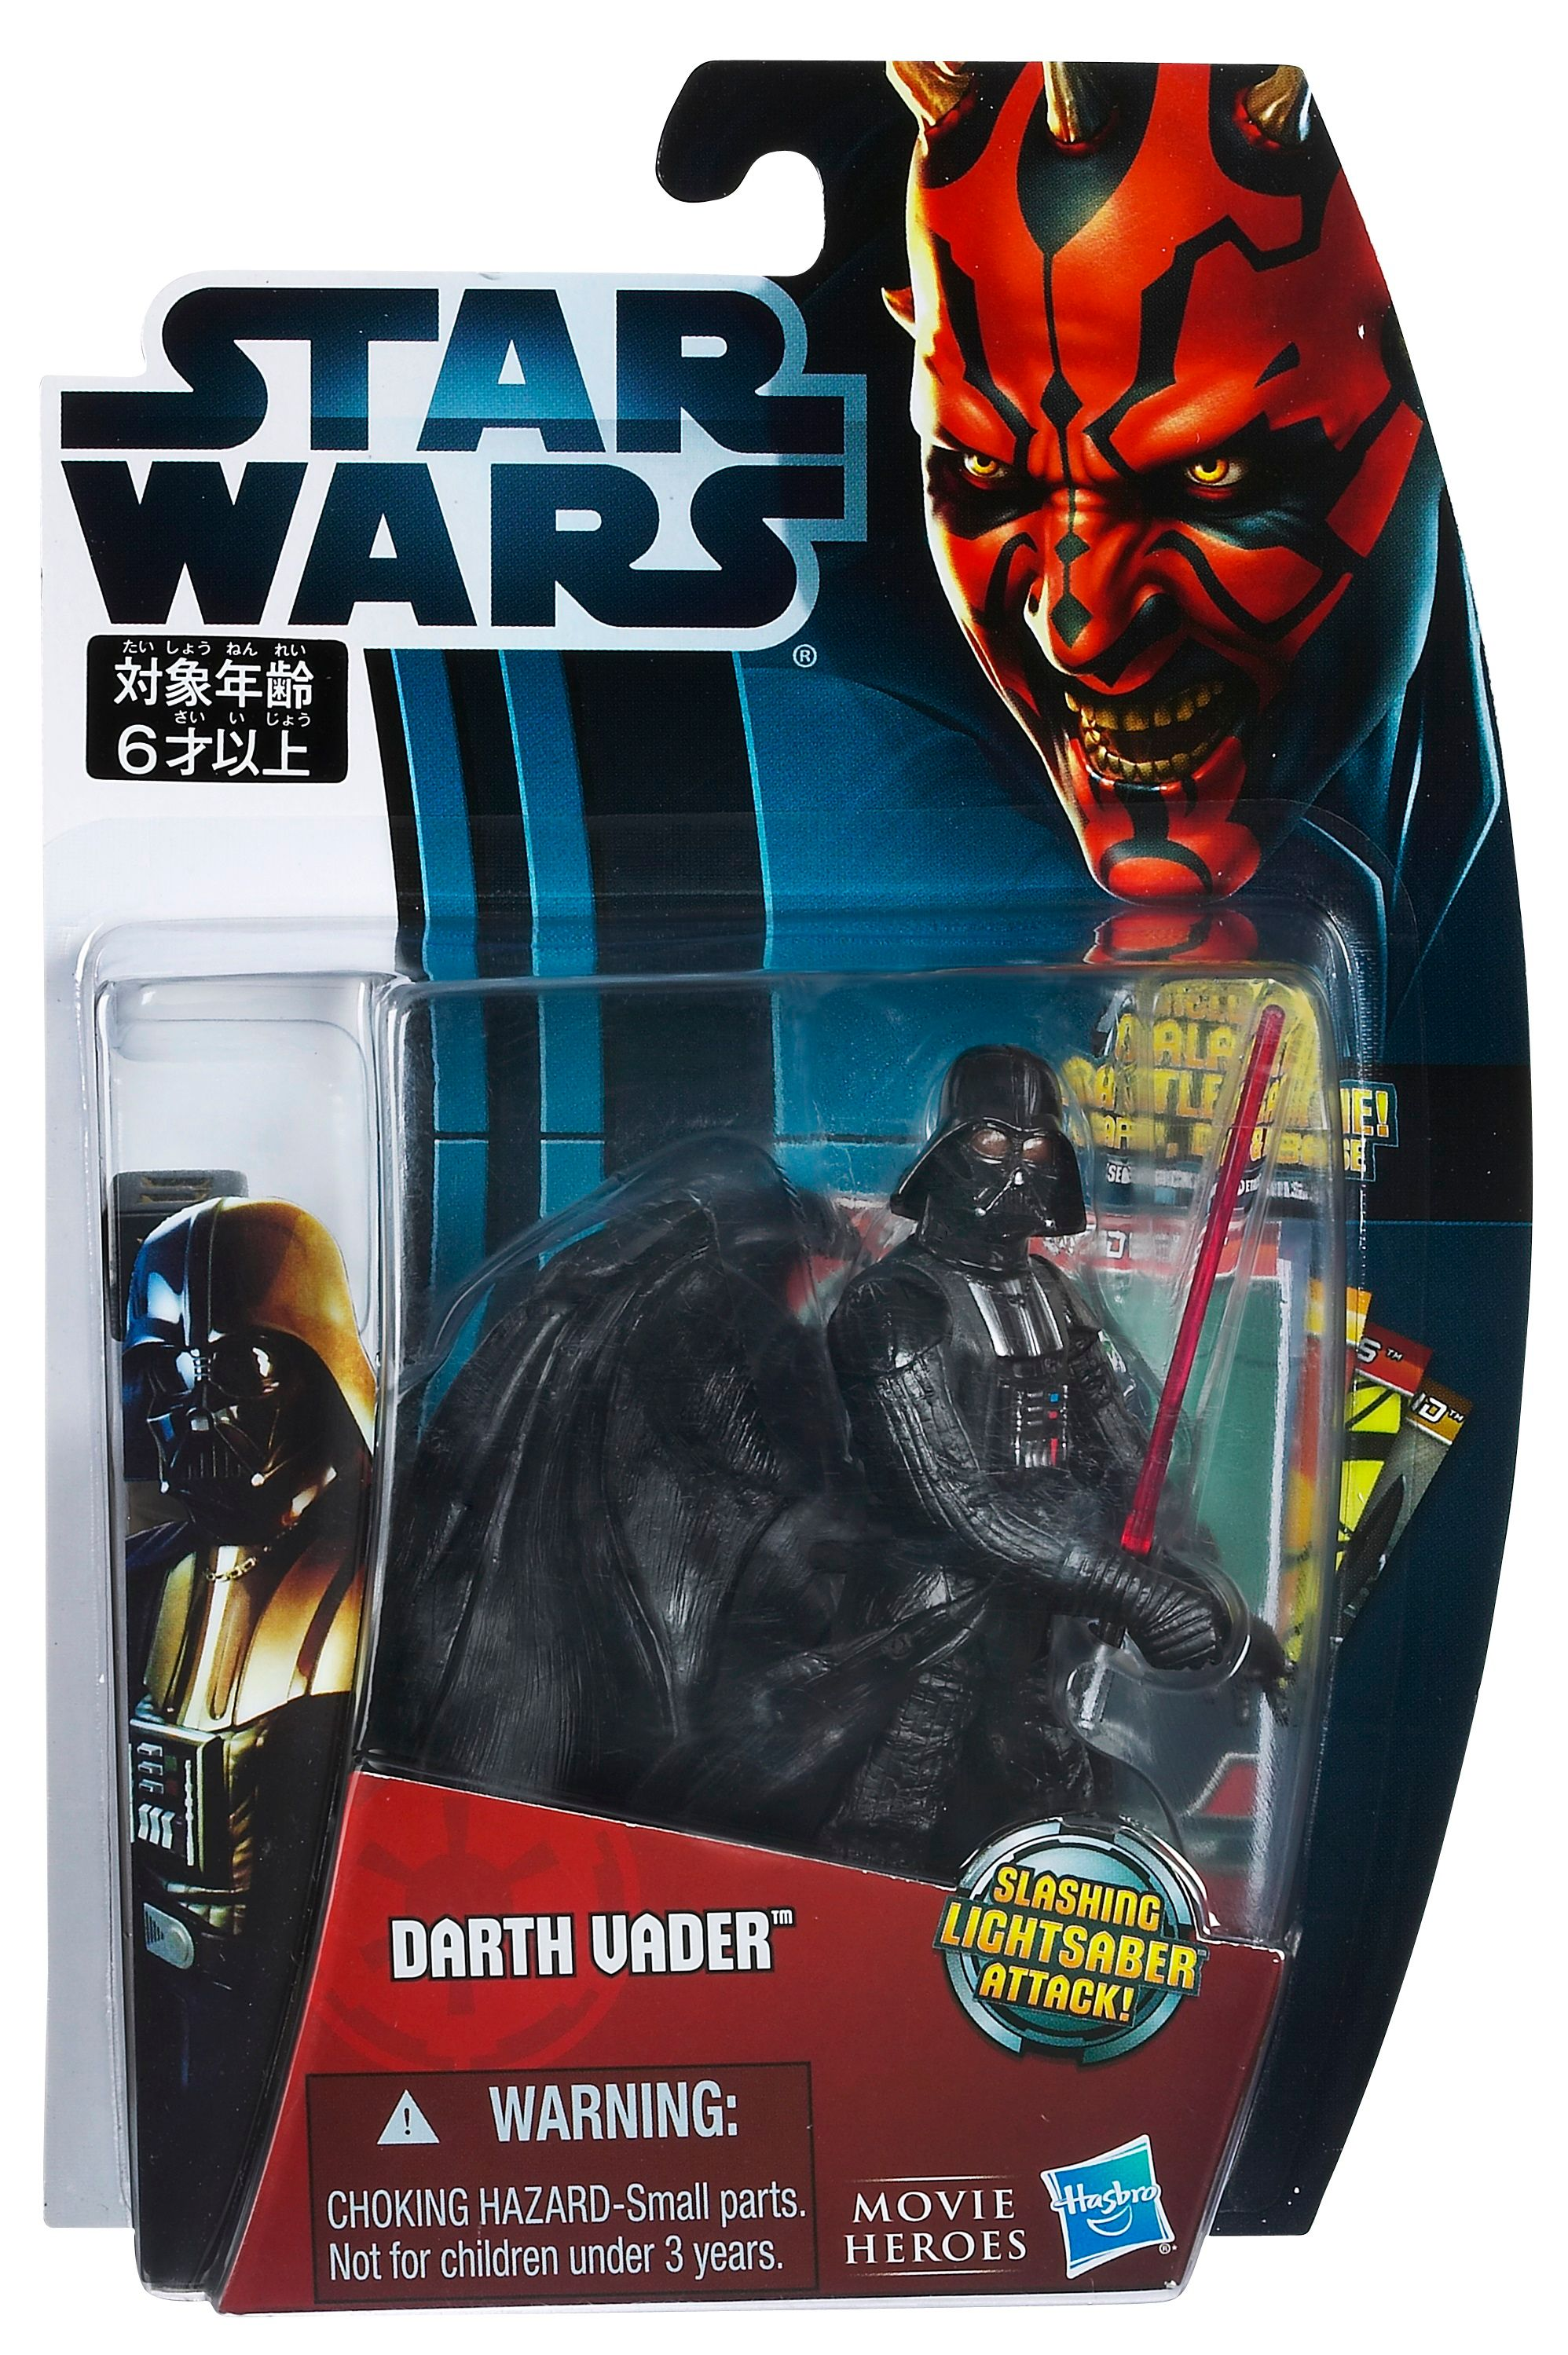 Star Wars Darth Vader Movie Heroes Figure